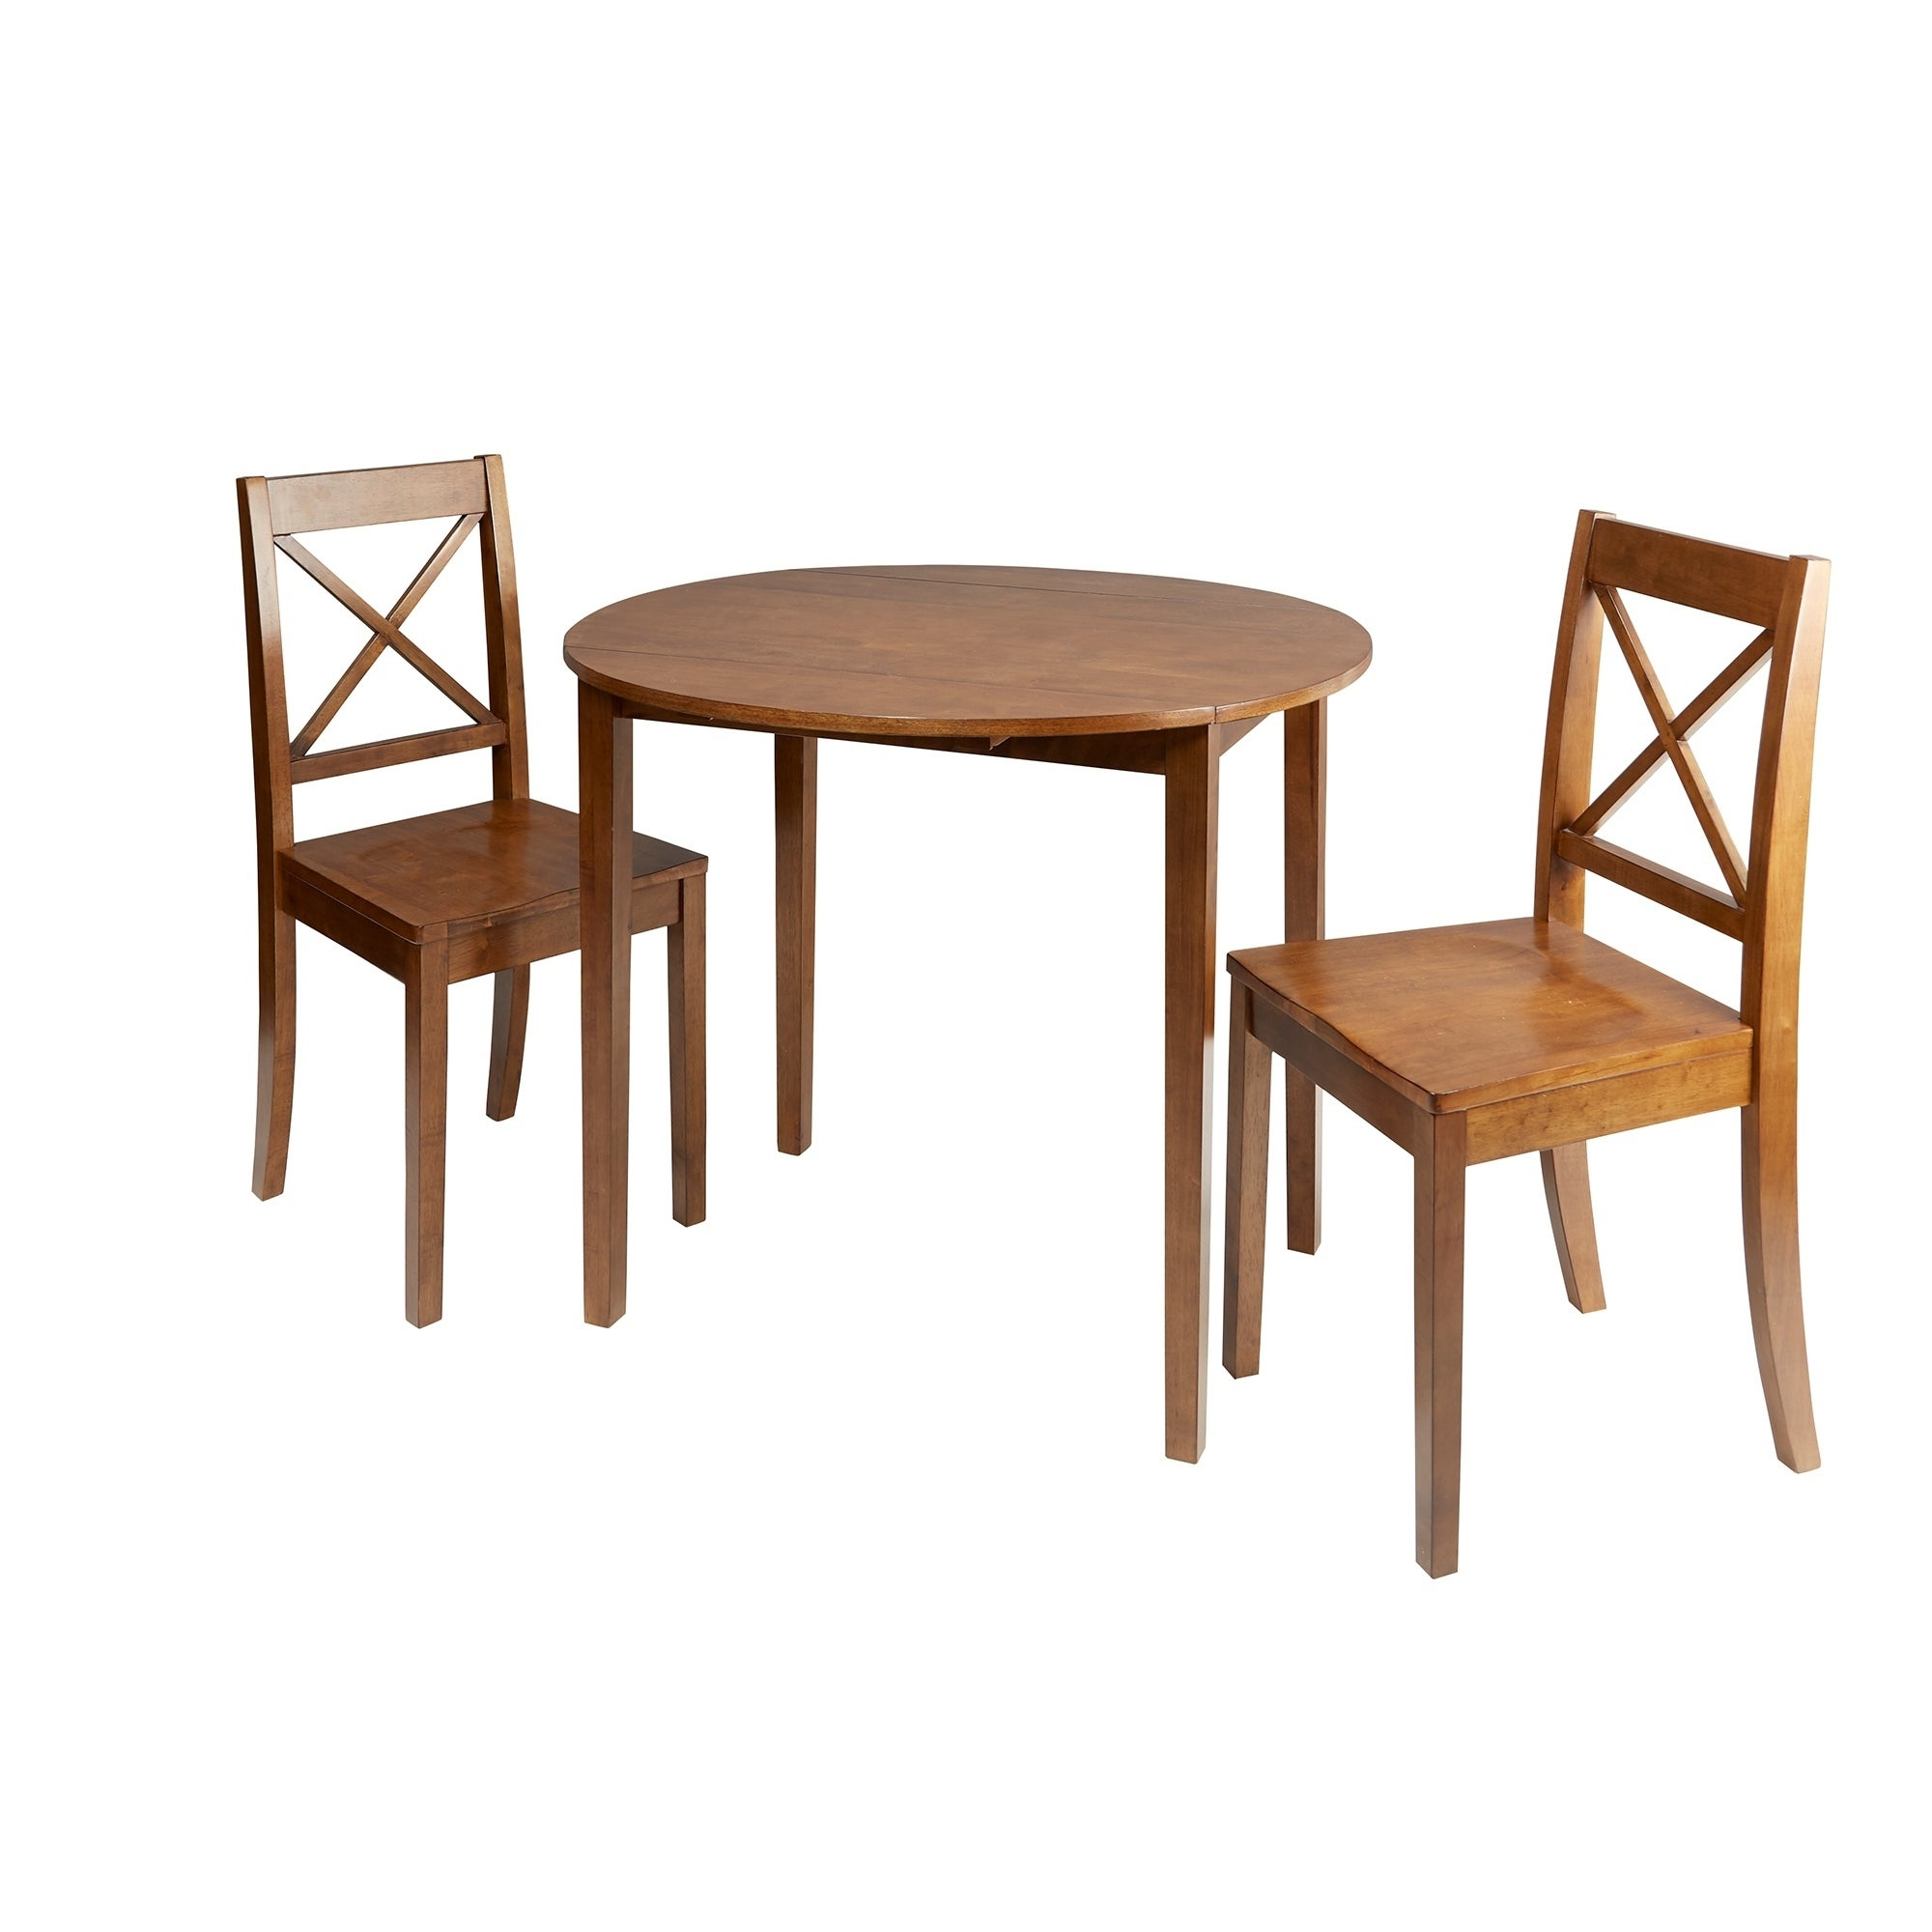 Transitional 3 Piece Drop Leaf Casual Dining Tables Set Within Most Current Murphy 3 Piece Drop Leaf Dining Set (View 7 of 25)